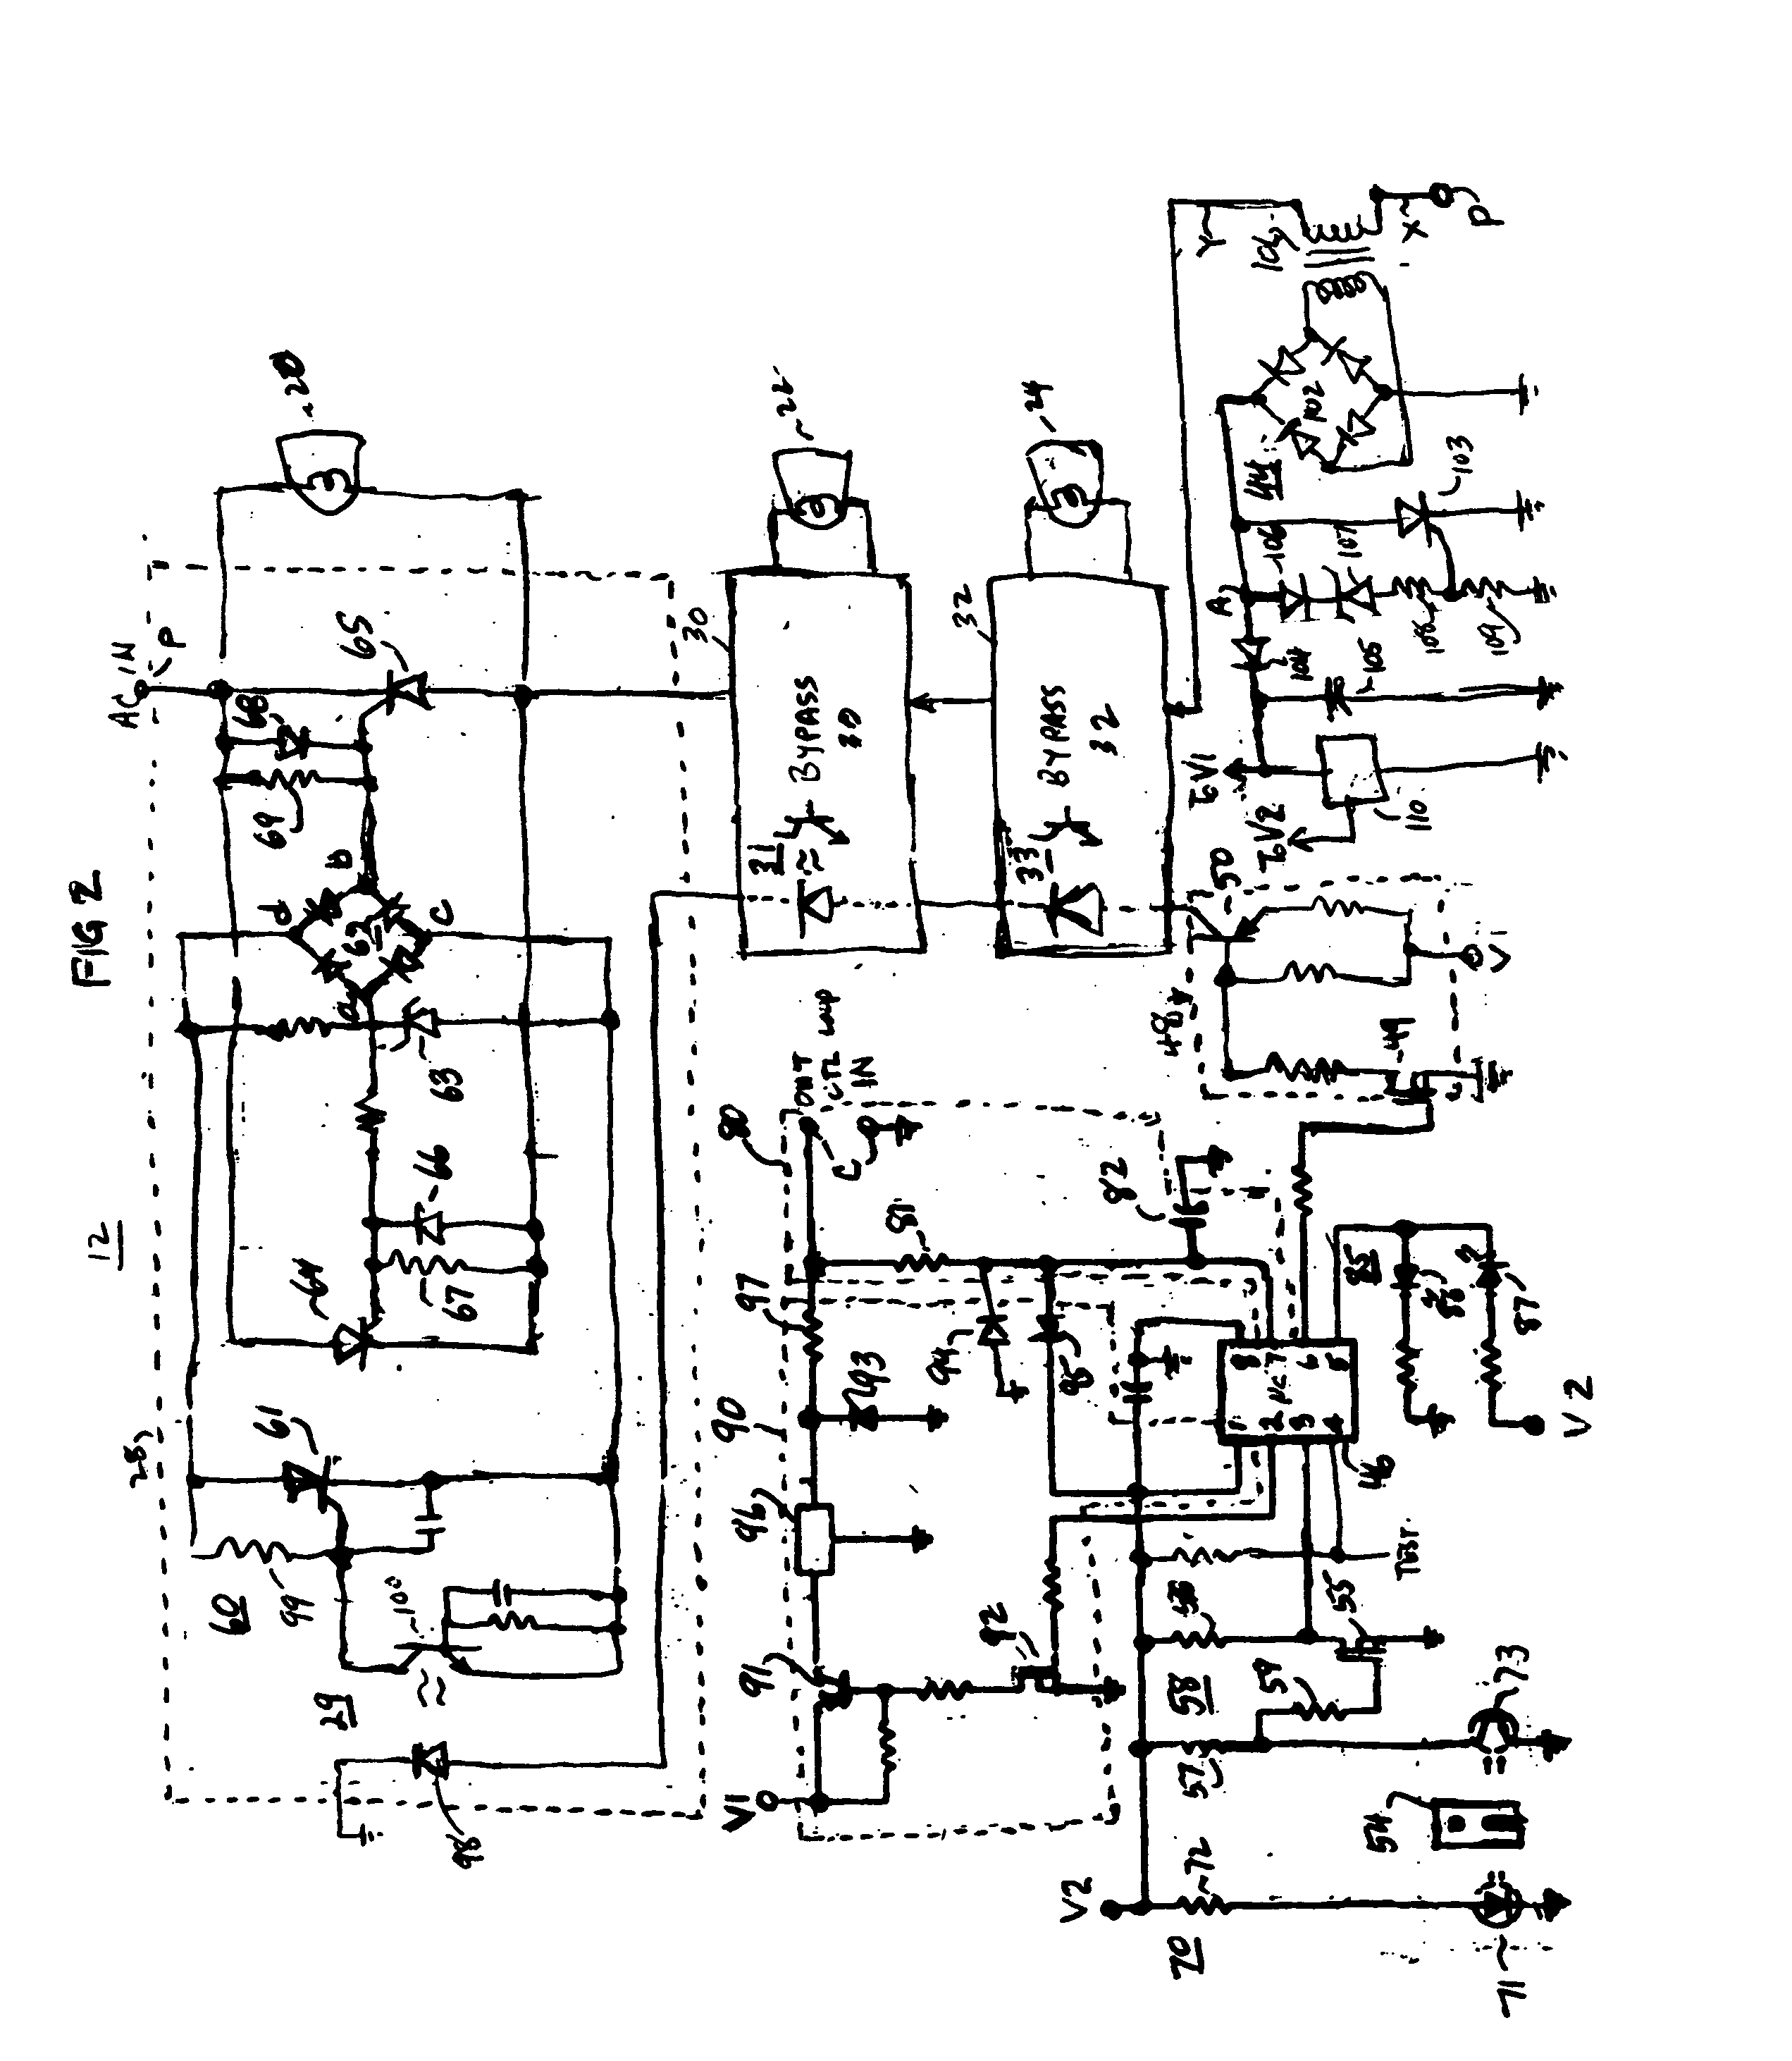 Thread118441 furthermore Index in addition Help Me Understand The Relationship Between Positive Negative Neutral And Grou in addition Grounded B Phase Wiring Diagram together with Ram 7 Pin Trailer Lights Wiring Diagram. on isolation transformer wiring diagram